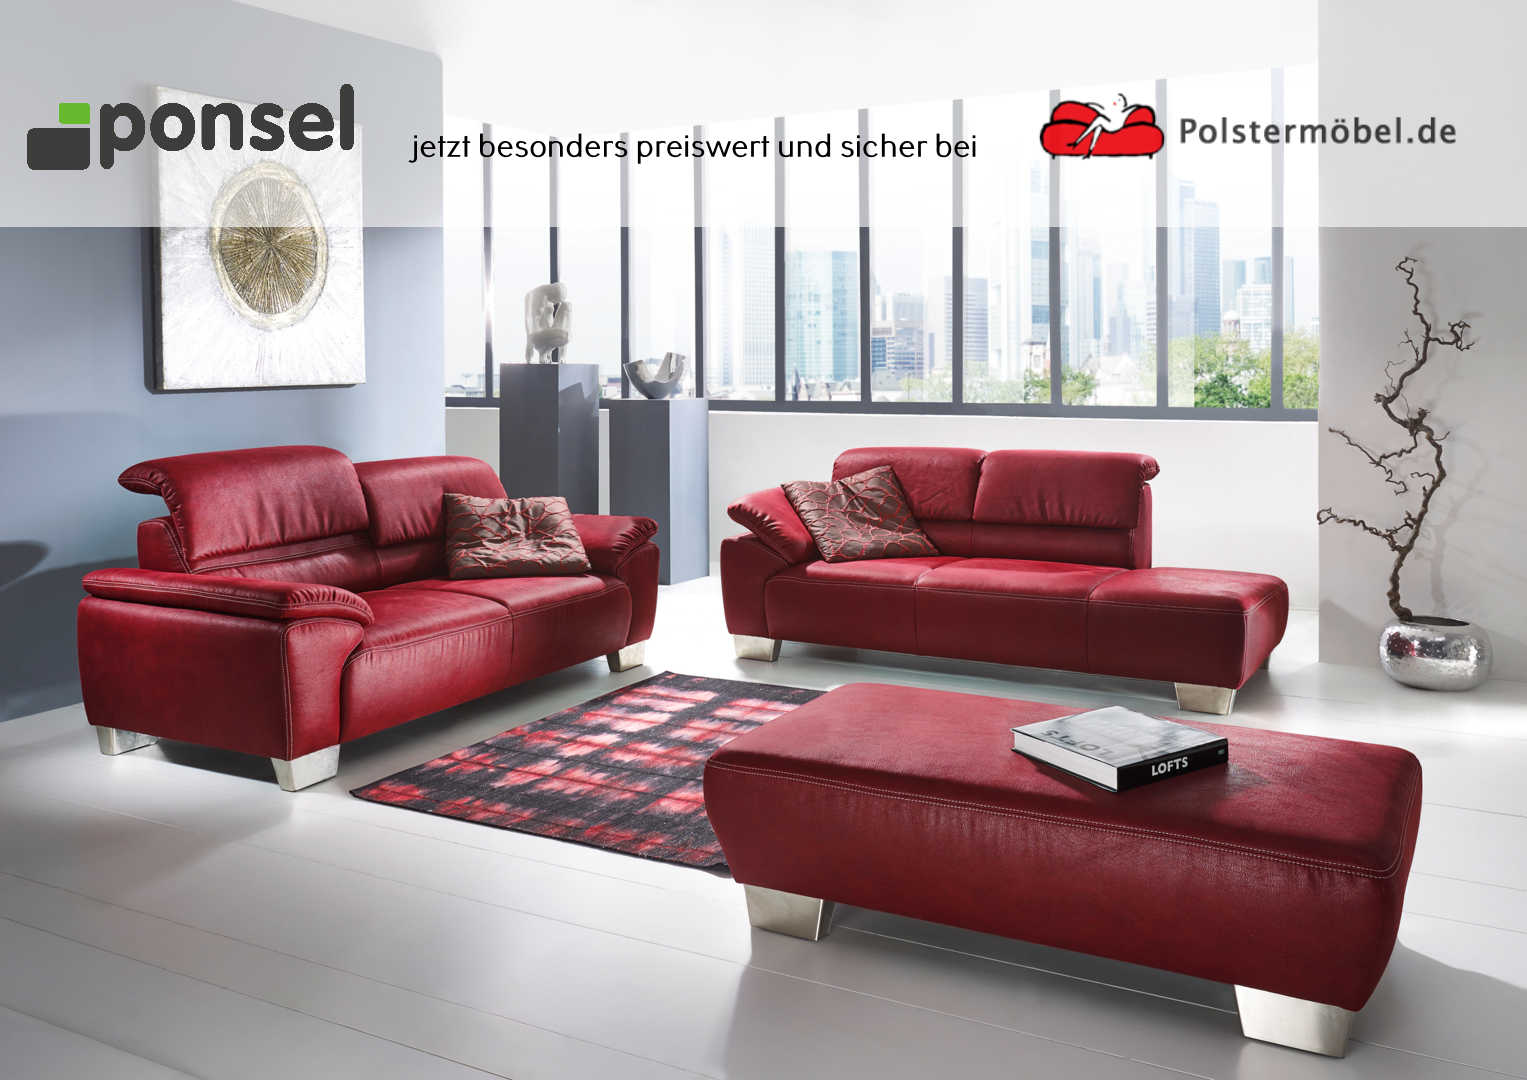 ponsel stoff venturo s 197 messina stoff polsterm. Black Bedroom Furniture Sets. Home Design Ideas